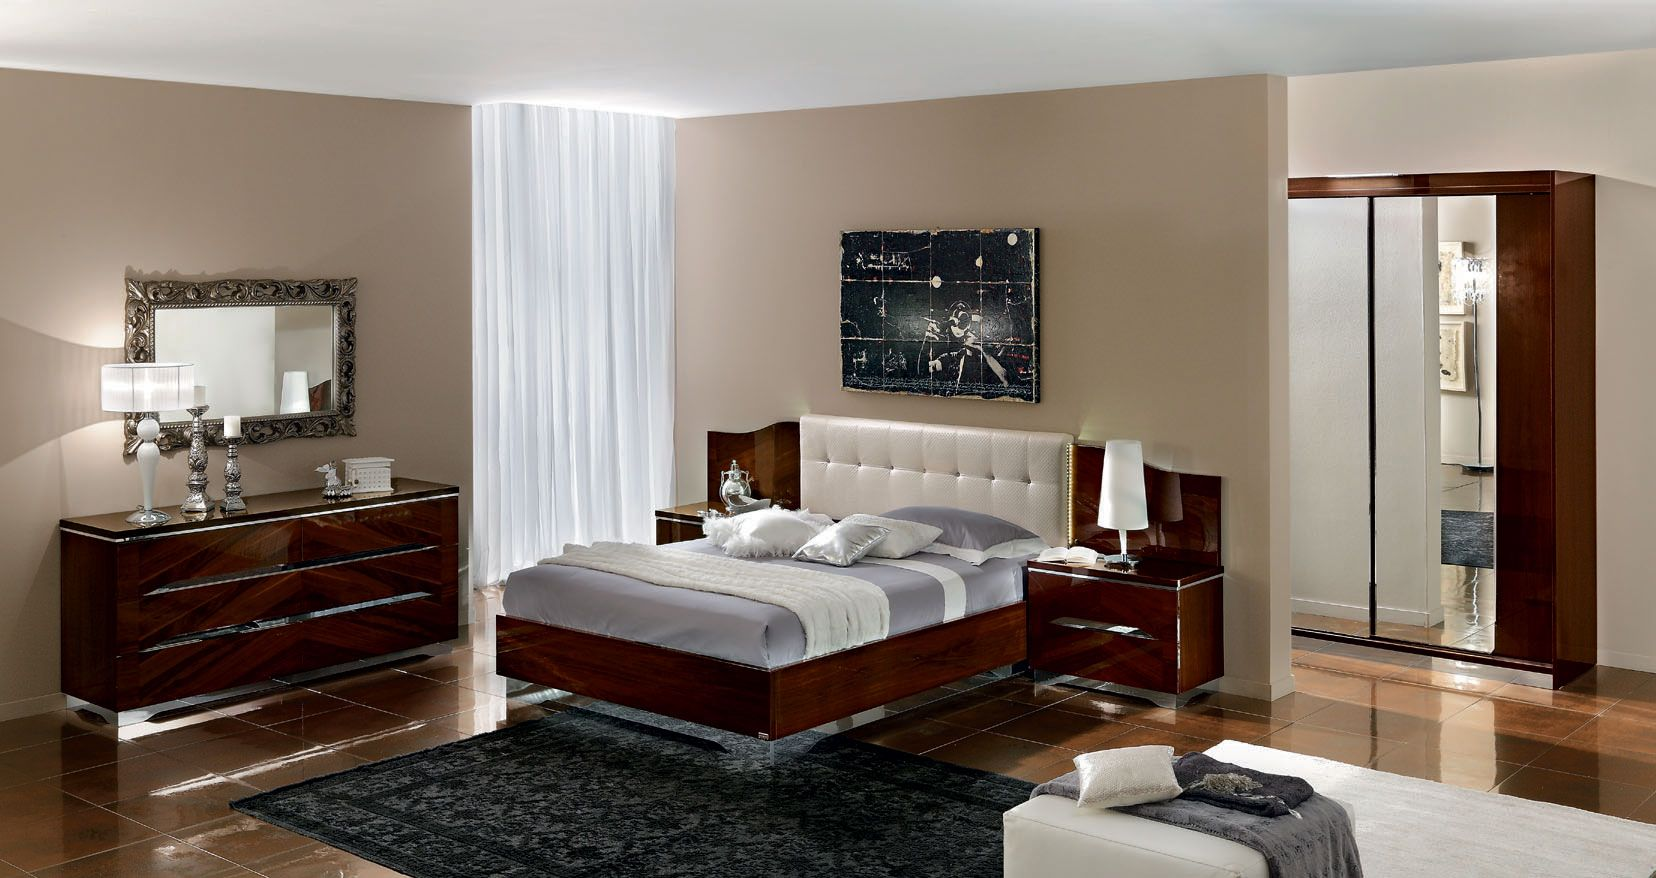 Gentil Bedroom Furniture Sets With Camel Bedrooms Rossella White Wooden .